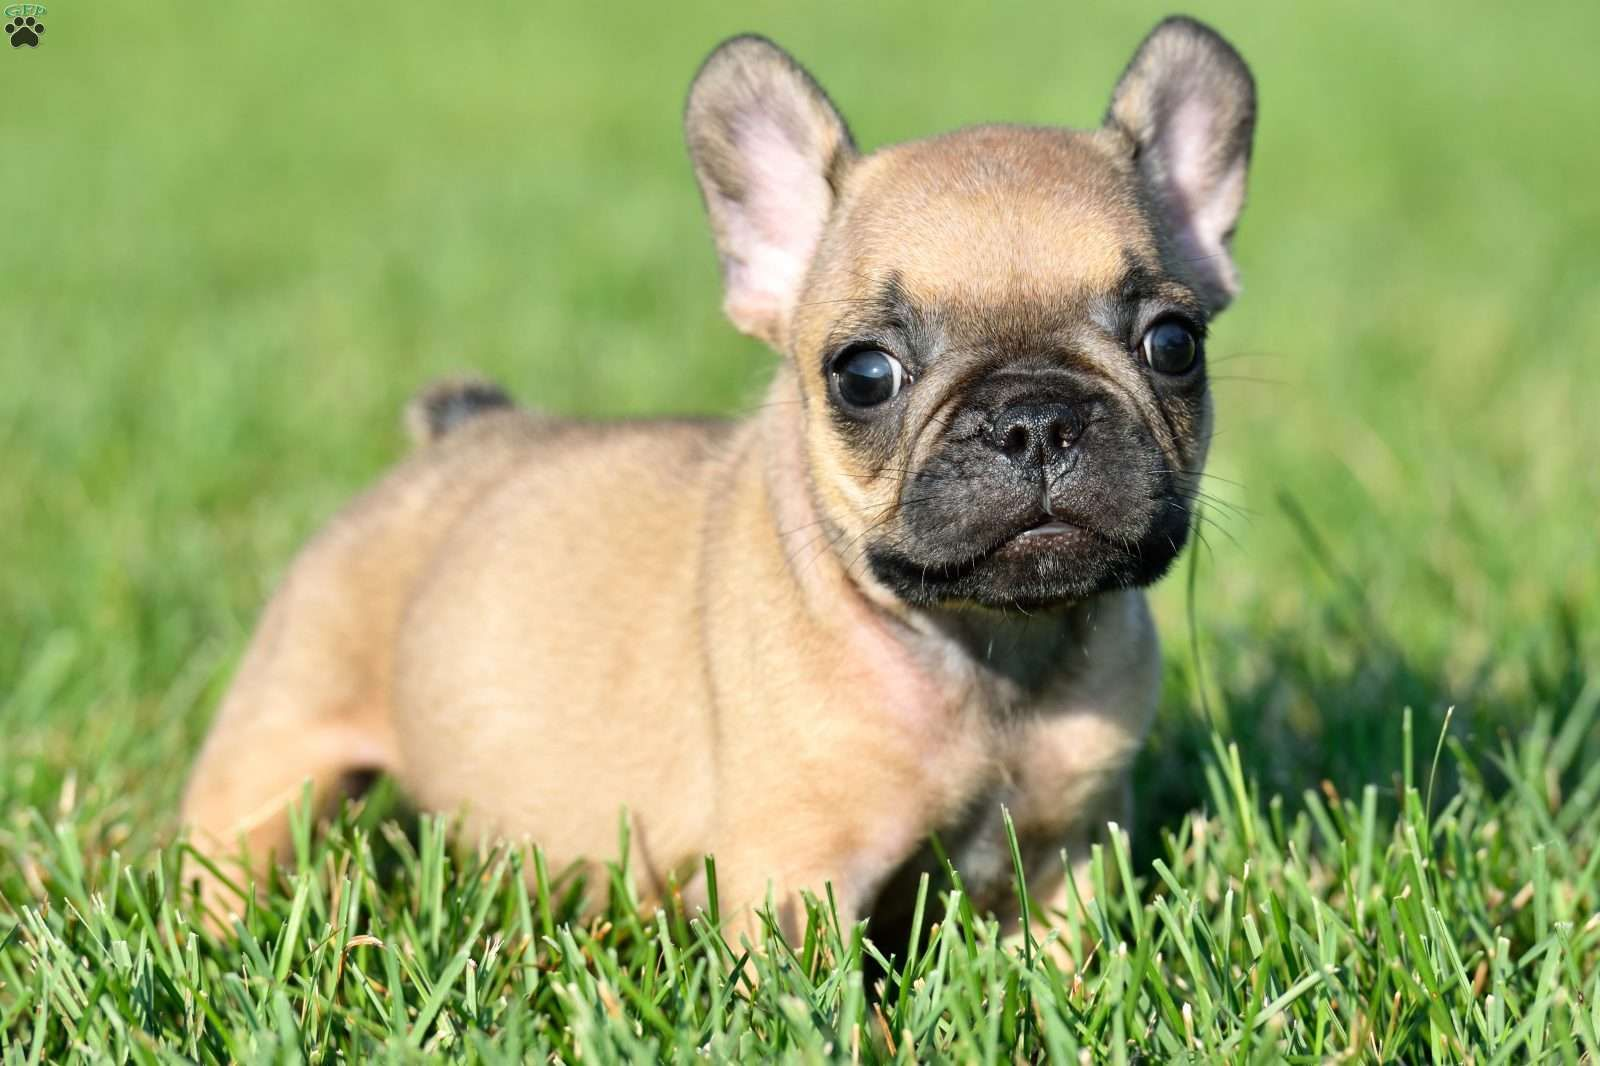 french bulldog puppies for sale - frenchie puppies | french